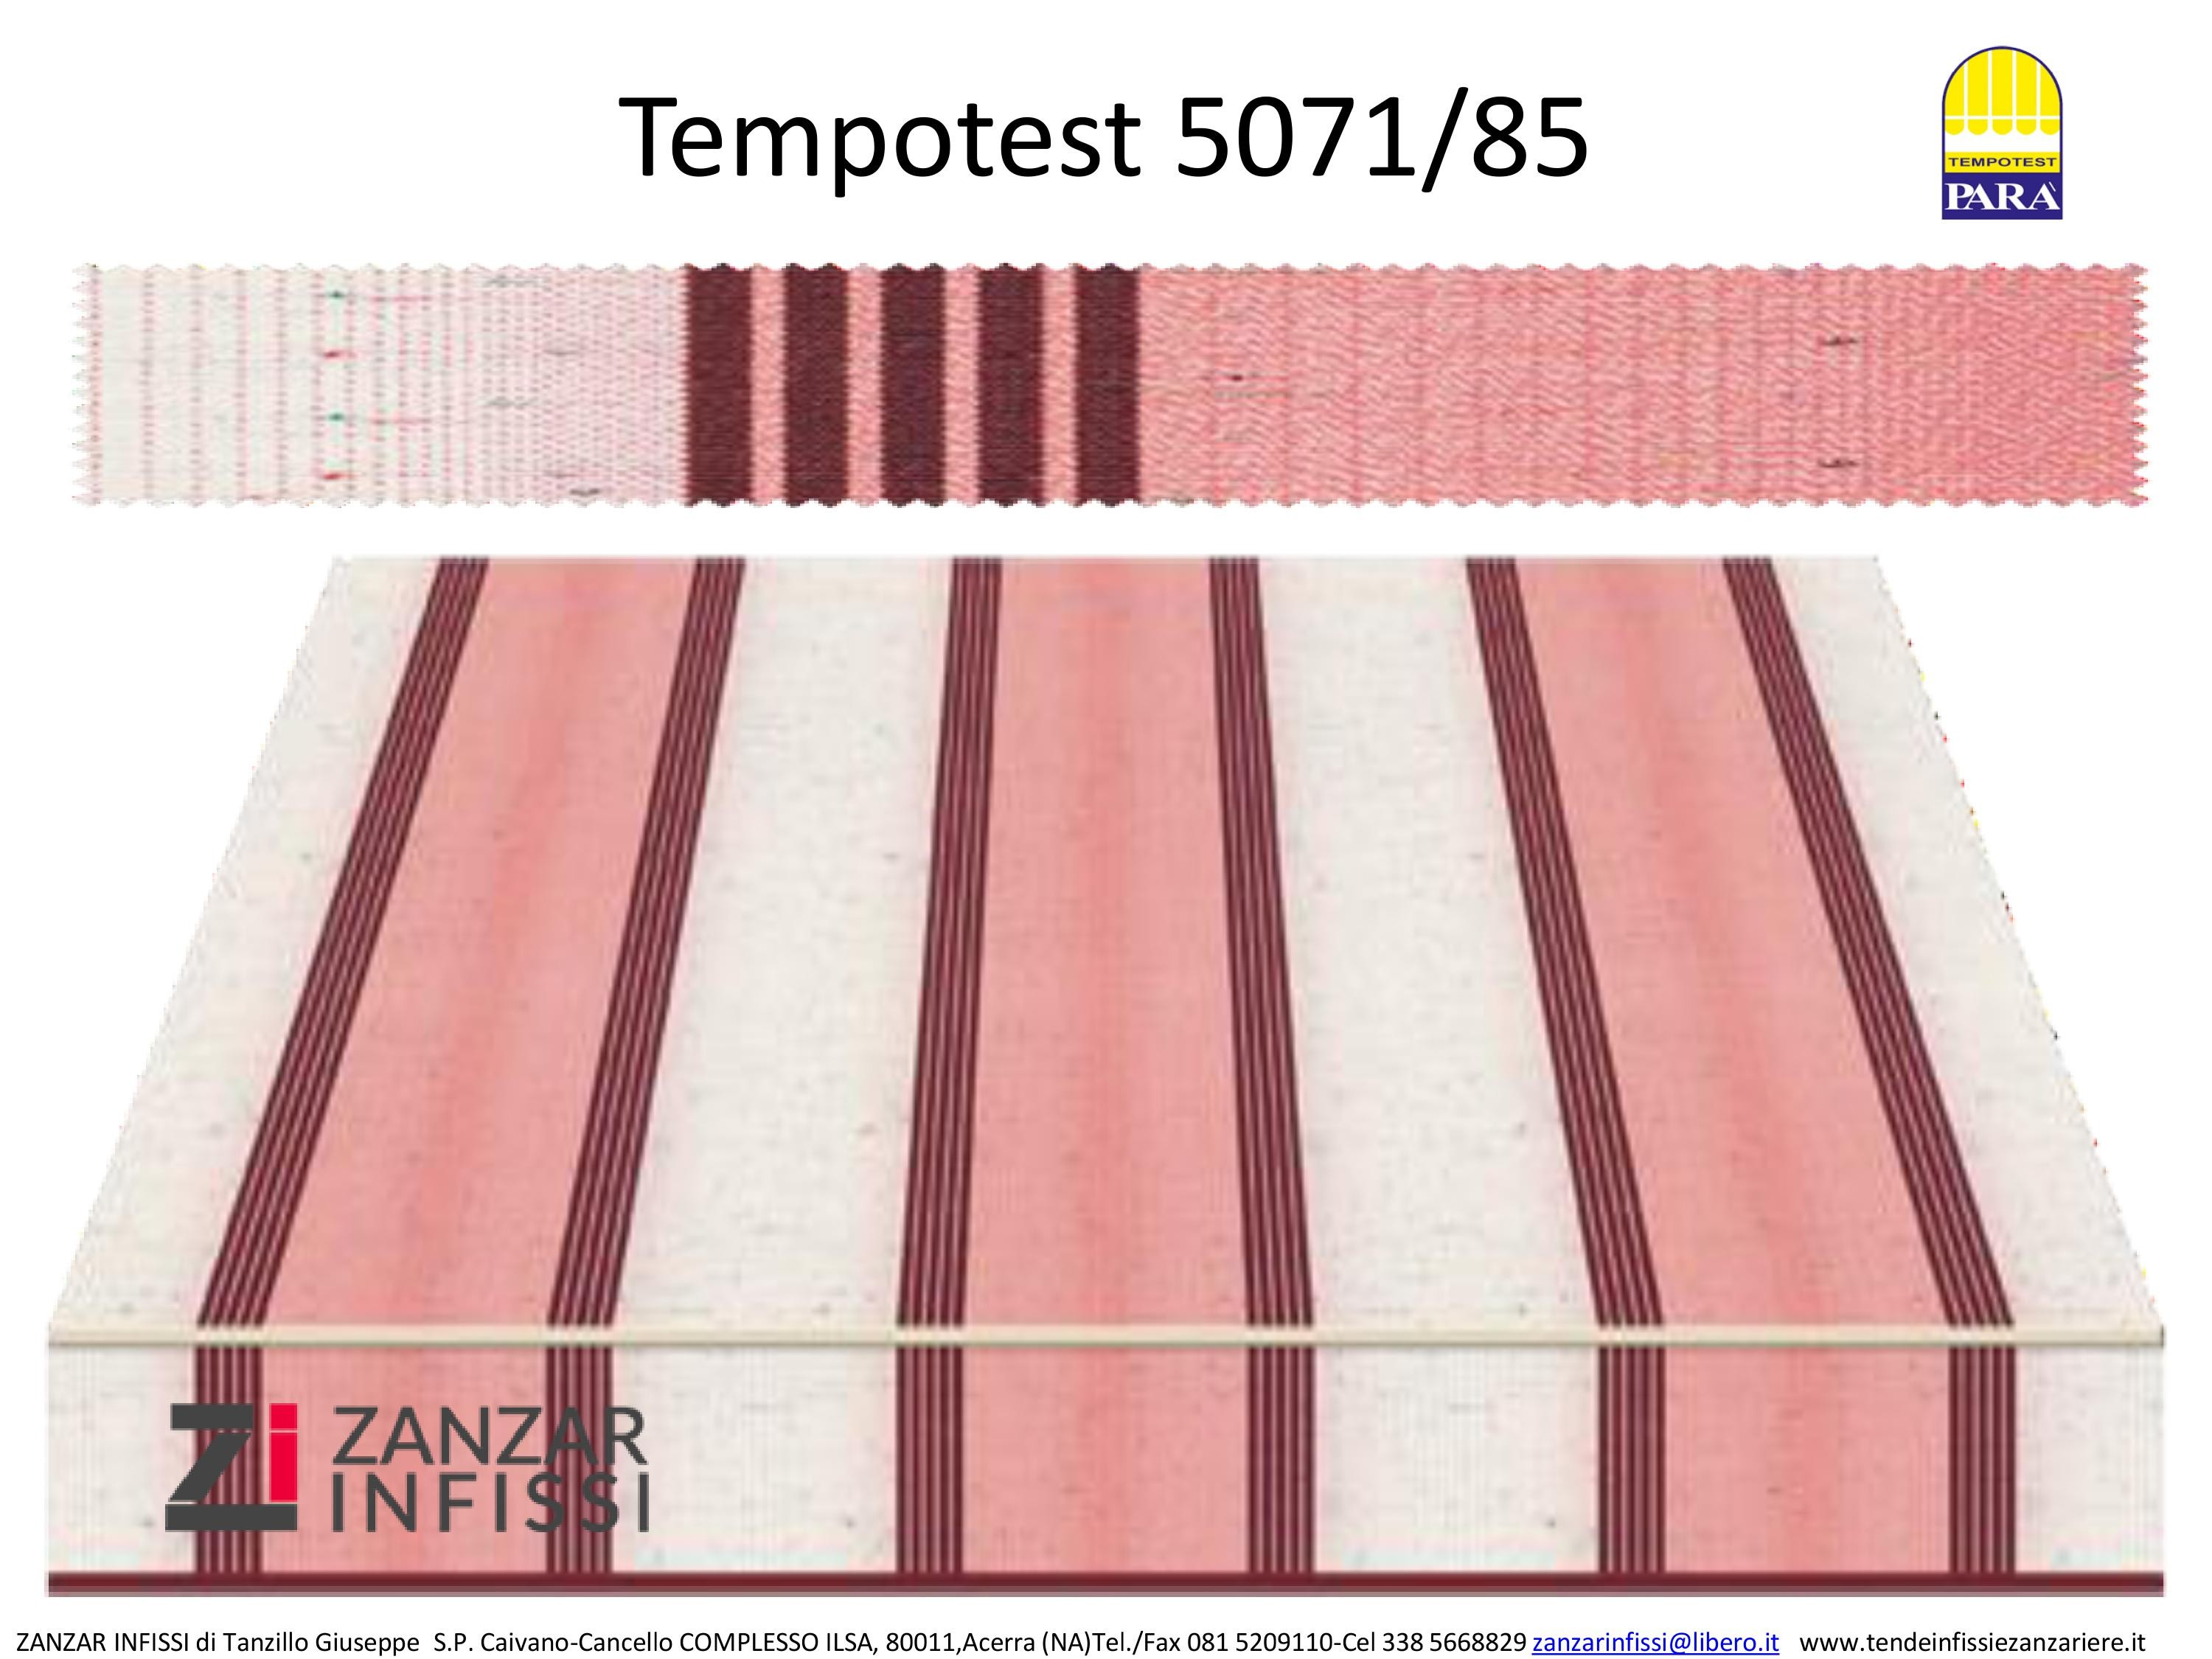 Tempotest 5071/85